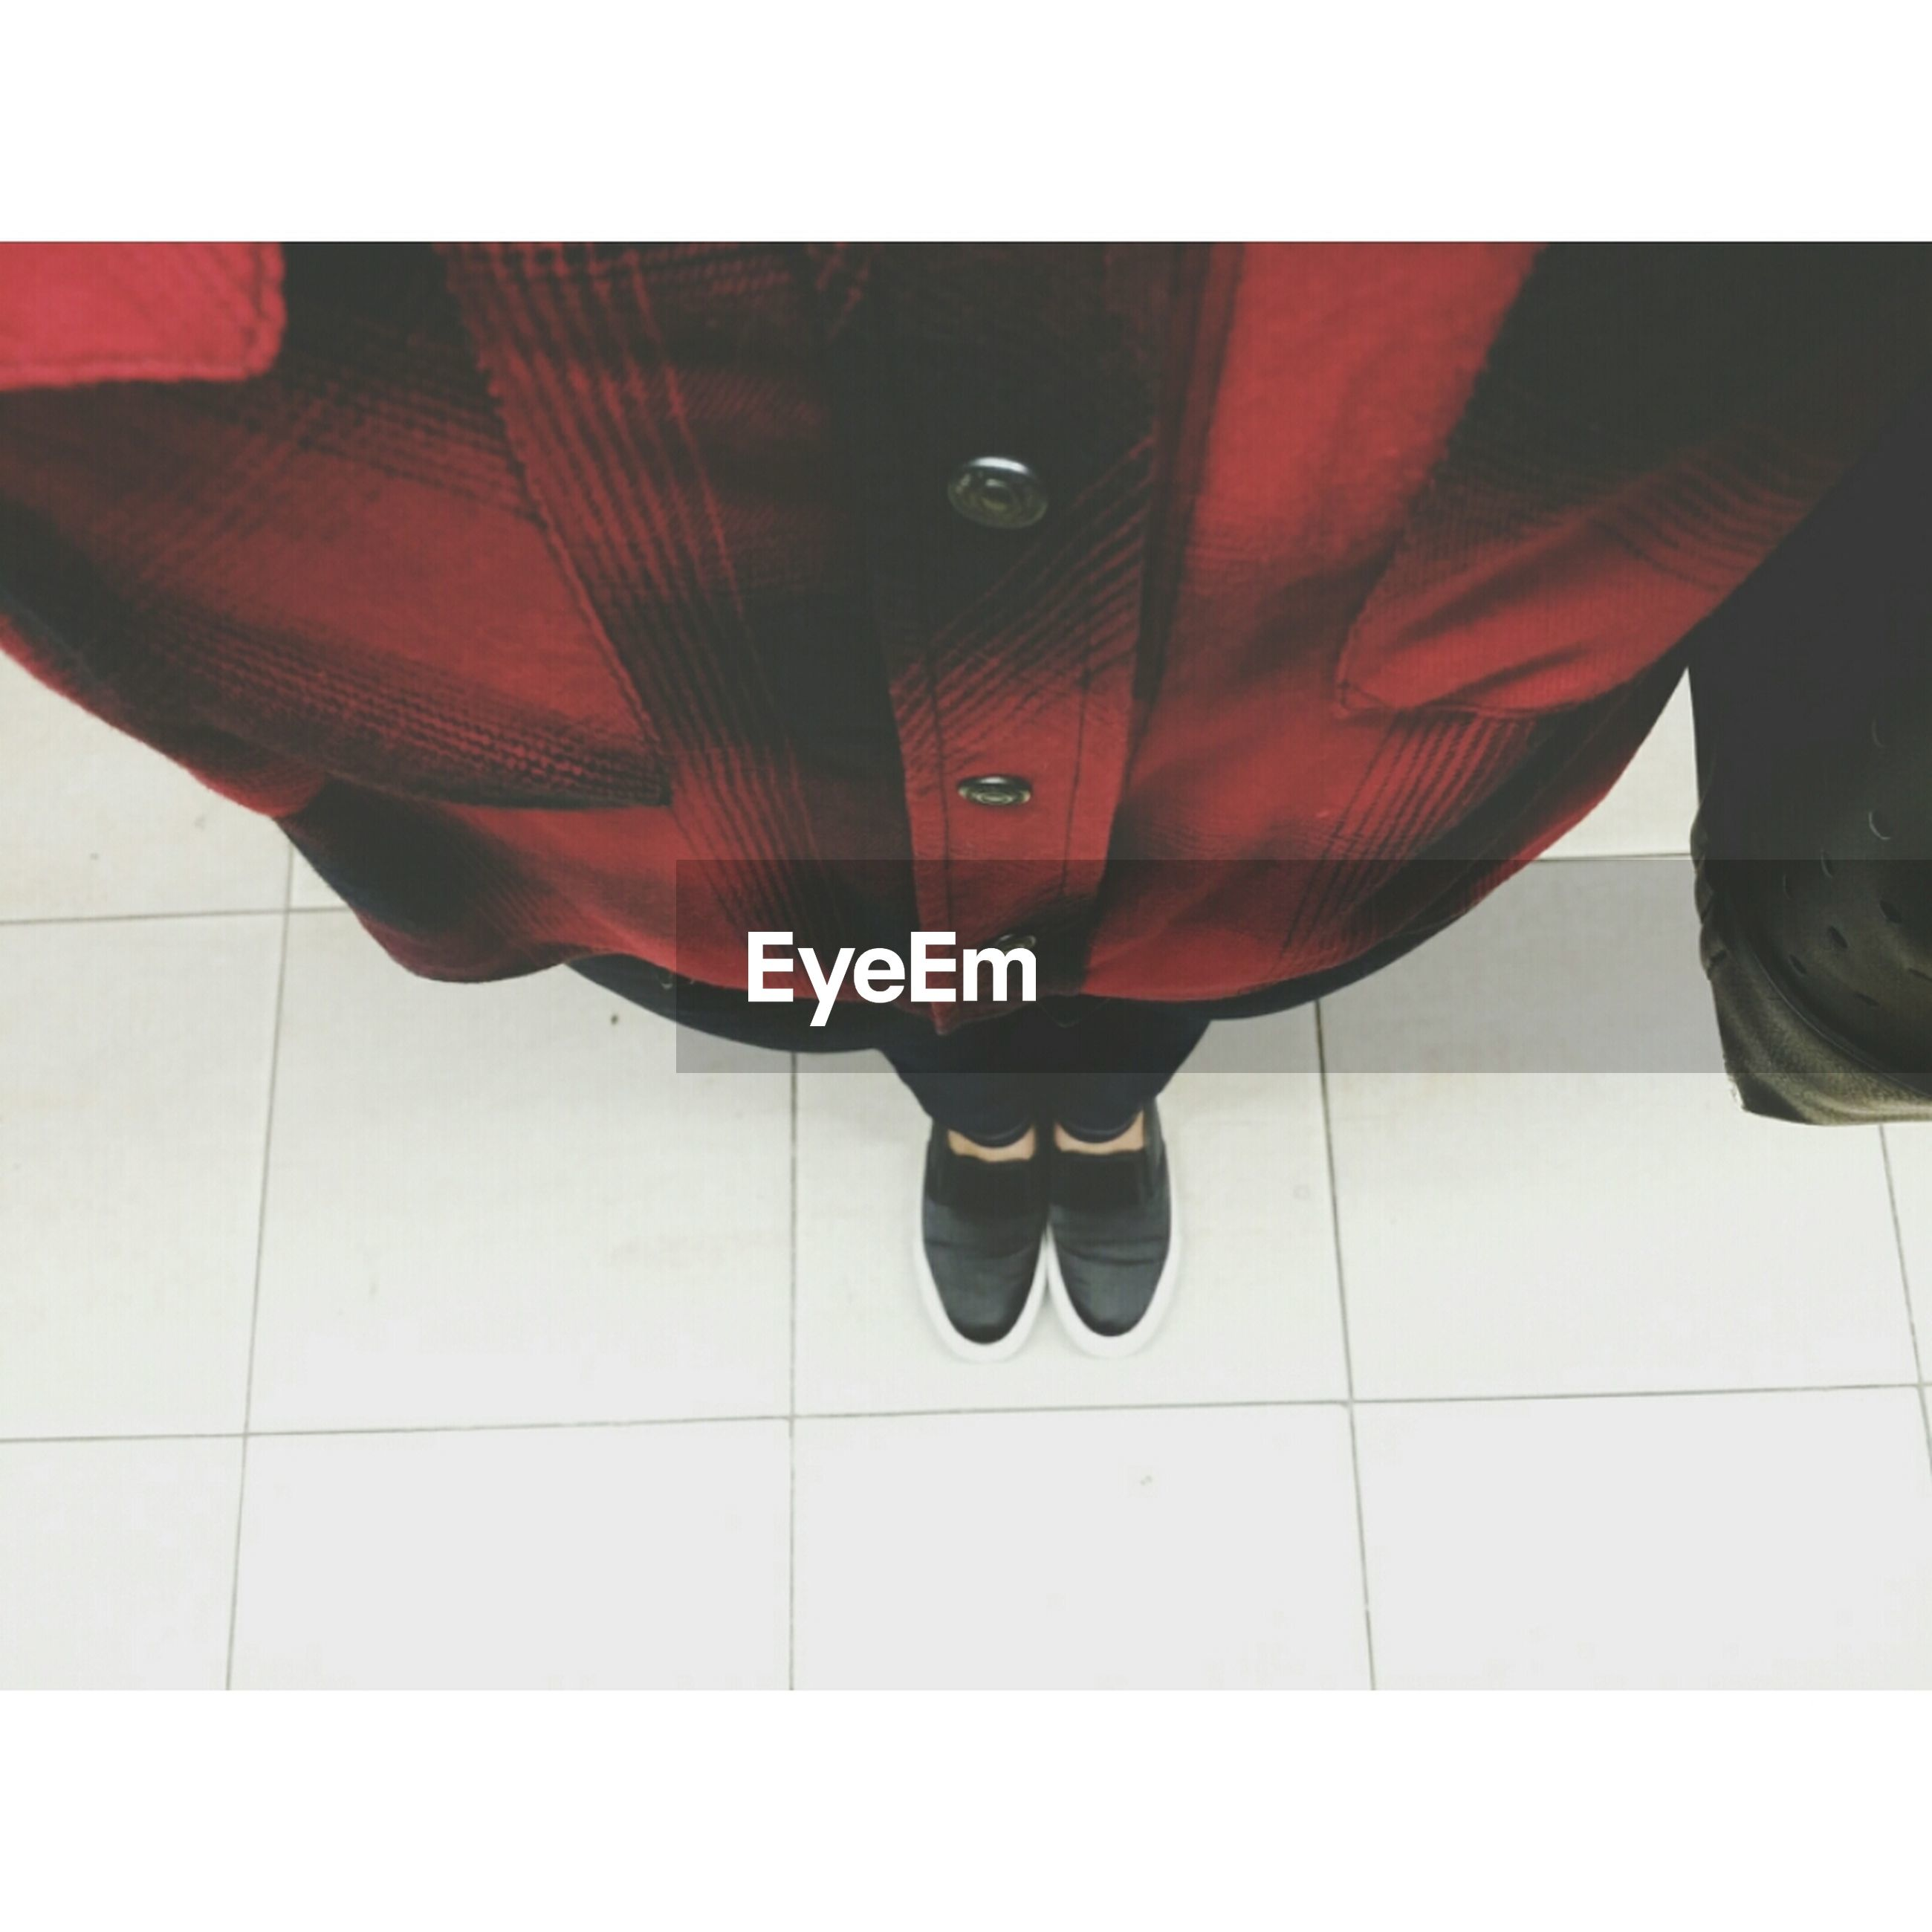 transfer print, indoors, auto post production filter, tiled floor, low section, person, shoe, flooring, footwear, tile, standing, red, pattern, high angle view, human foot, shadow